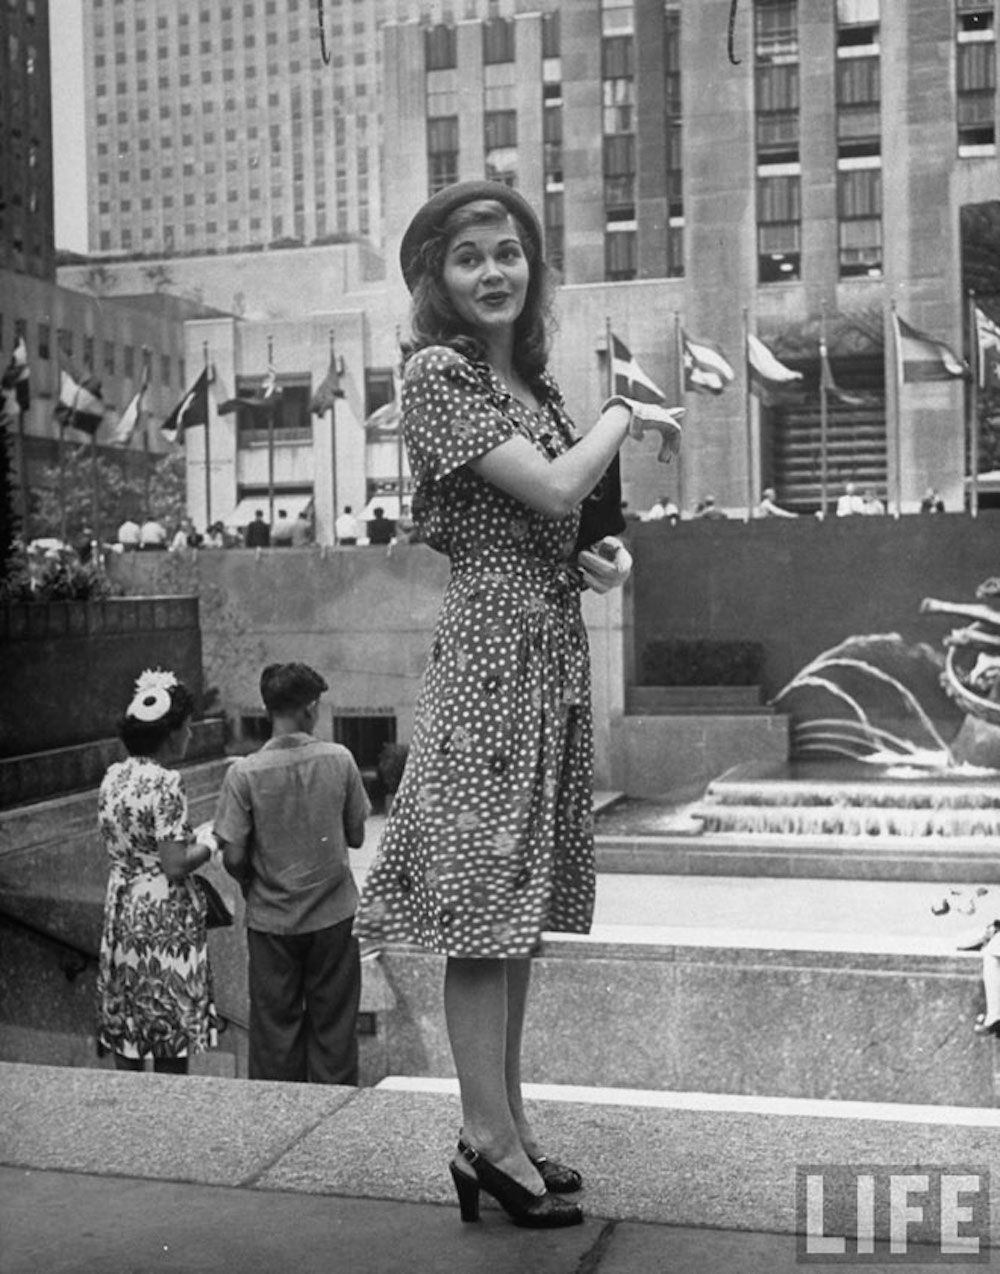 1940s Fashion: Amazing New York Street Style From The 1940s